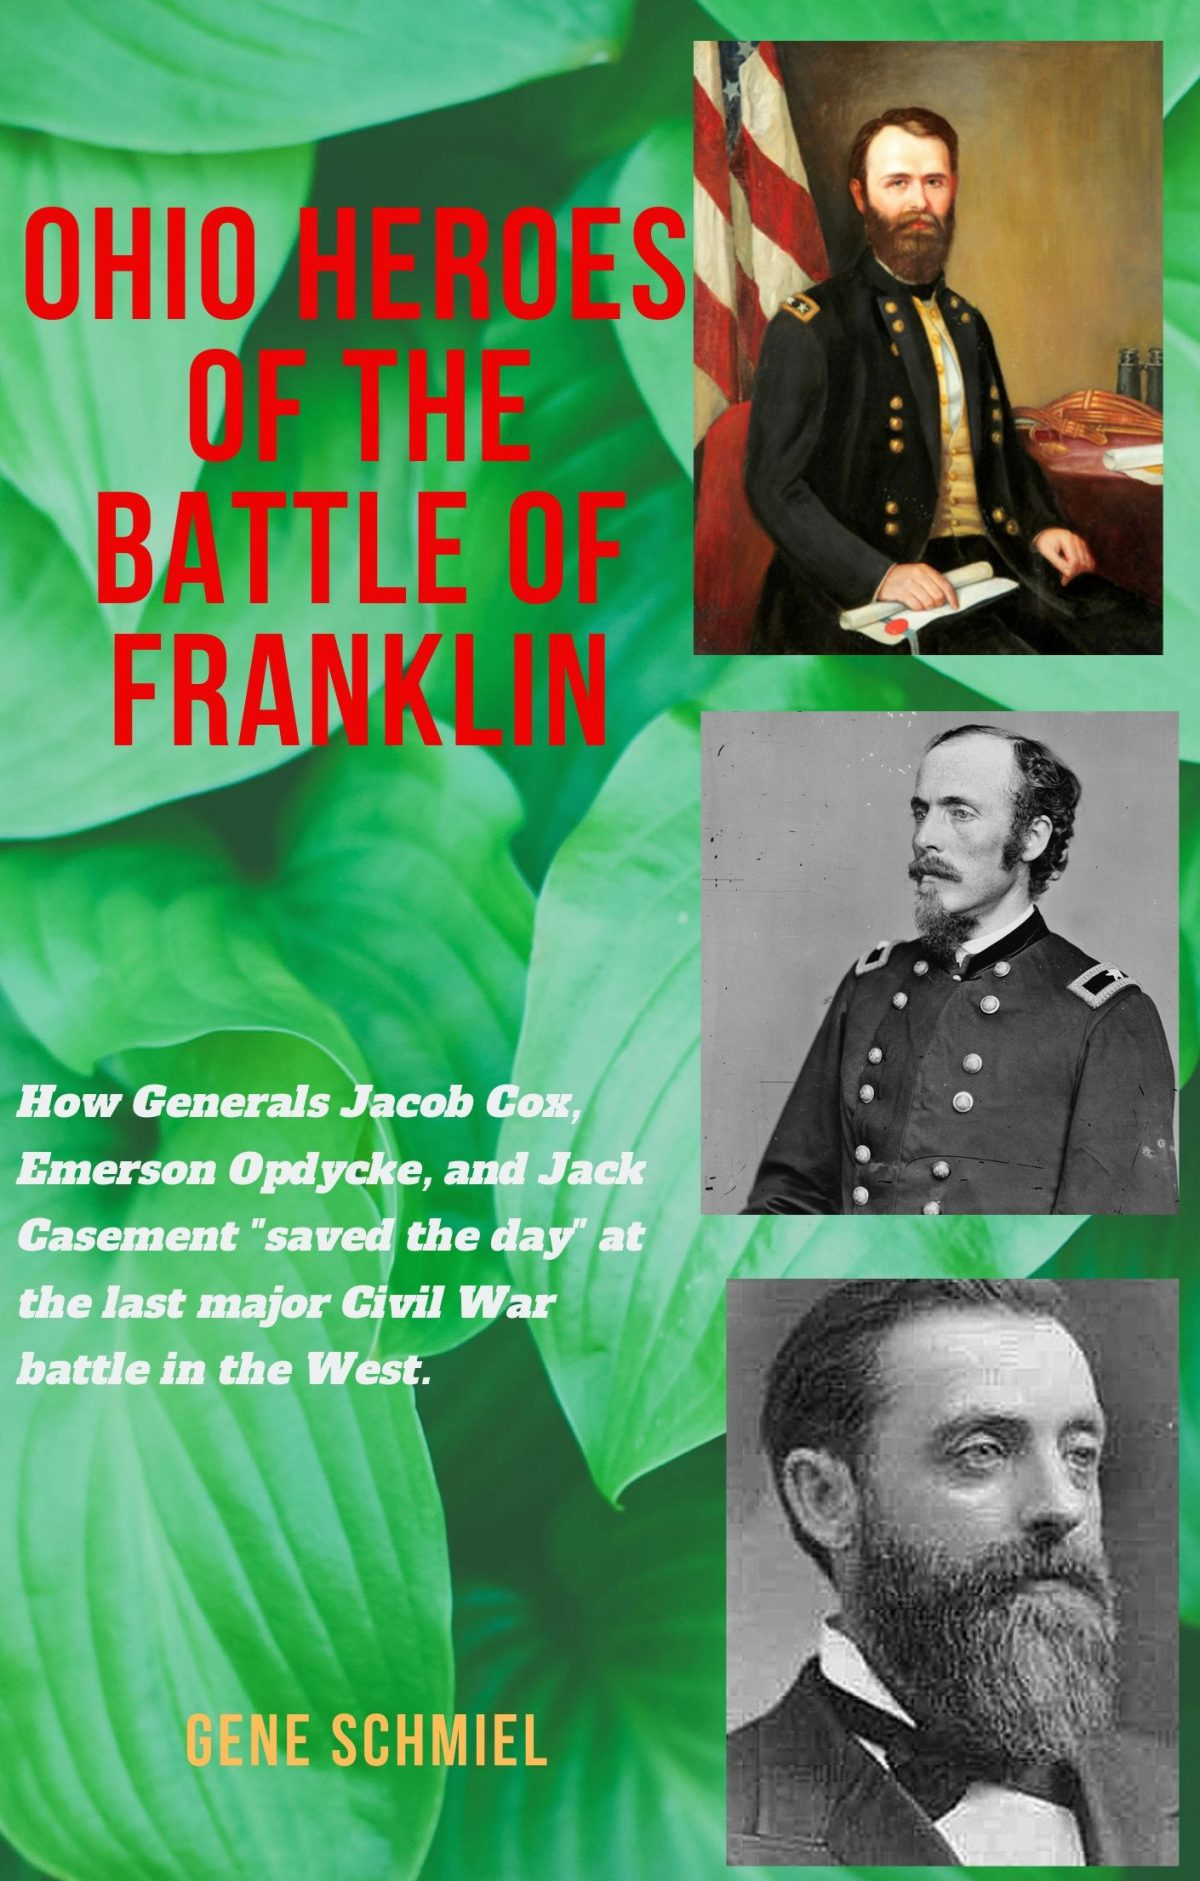 GENE SCHMIEL, CIVIL WAR HISTORIAN, AUTHOR, AND LECTURER